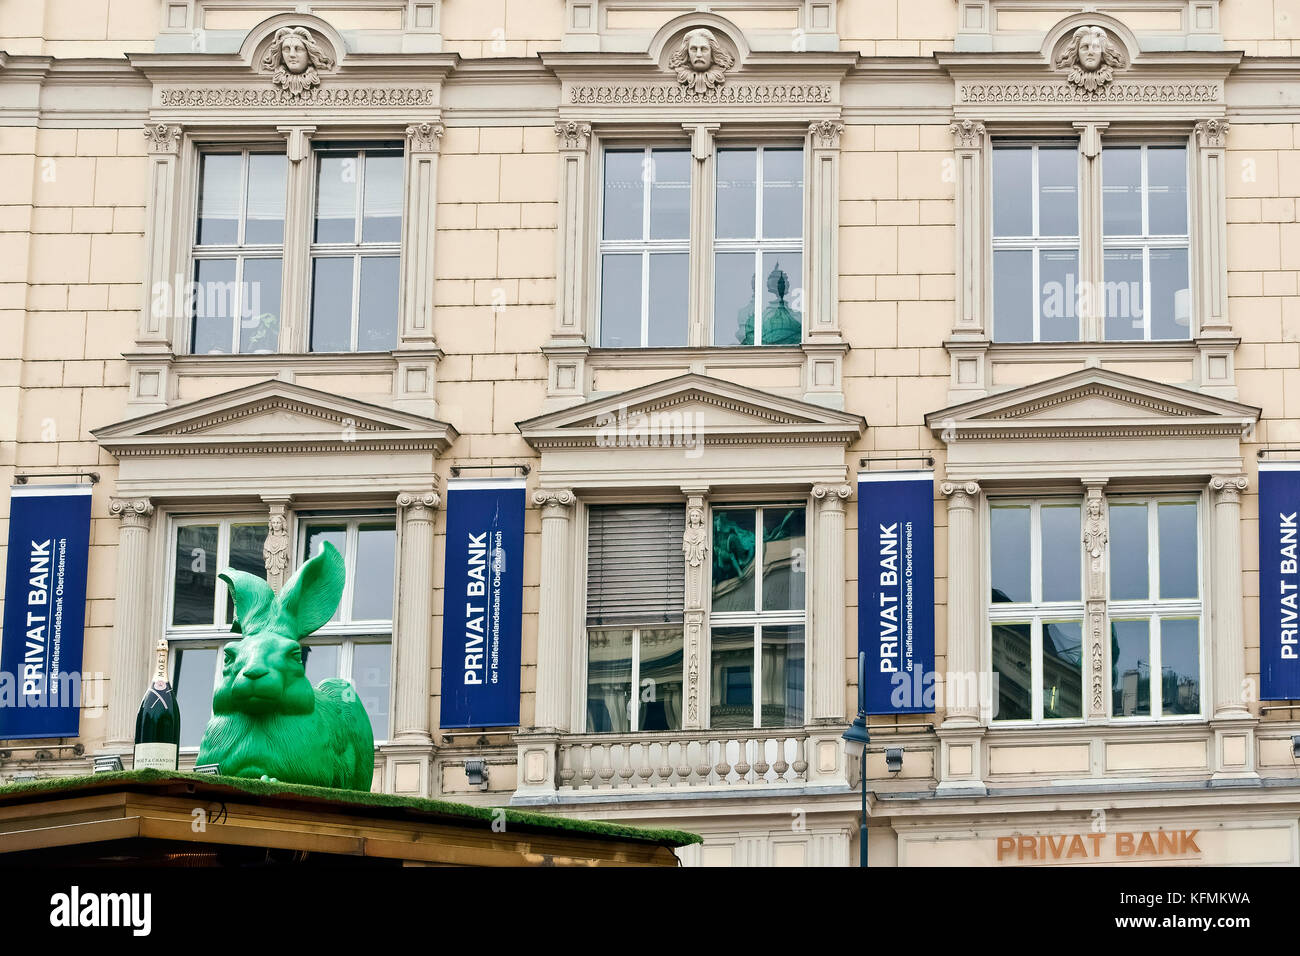 Privat bank at Operngasse. On rooftop: big green plastic rabbit sculpture, Cracking art project Installation. Big - Stock Image